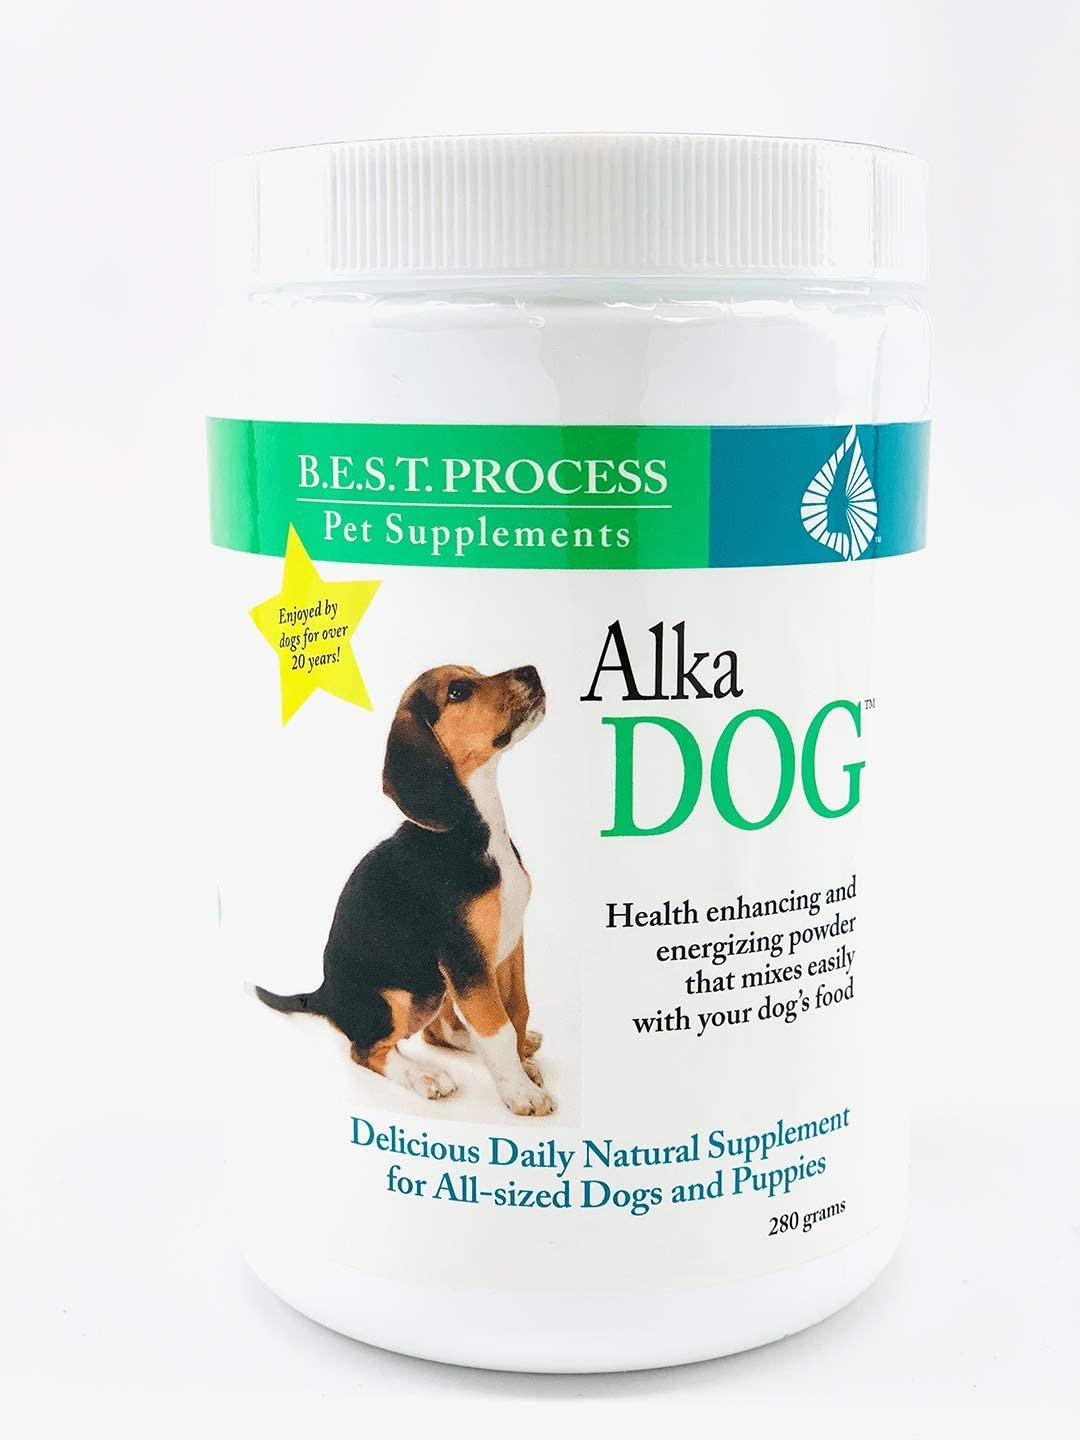 Alka-Dog Natural Multivitamin for Dogs with Antioxidants, Digestive Enzymes, Chlorophyll Beef Liver for Healthy Skin, Coat, Eyes, Breath, Digestion, Immunity